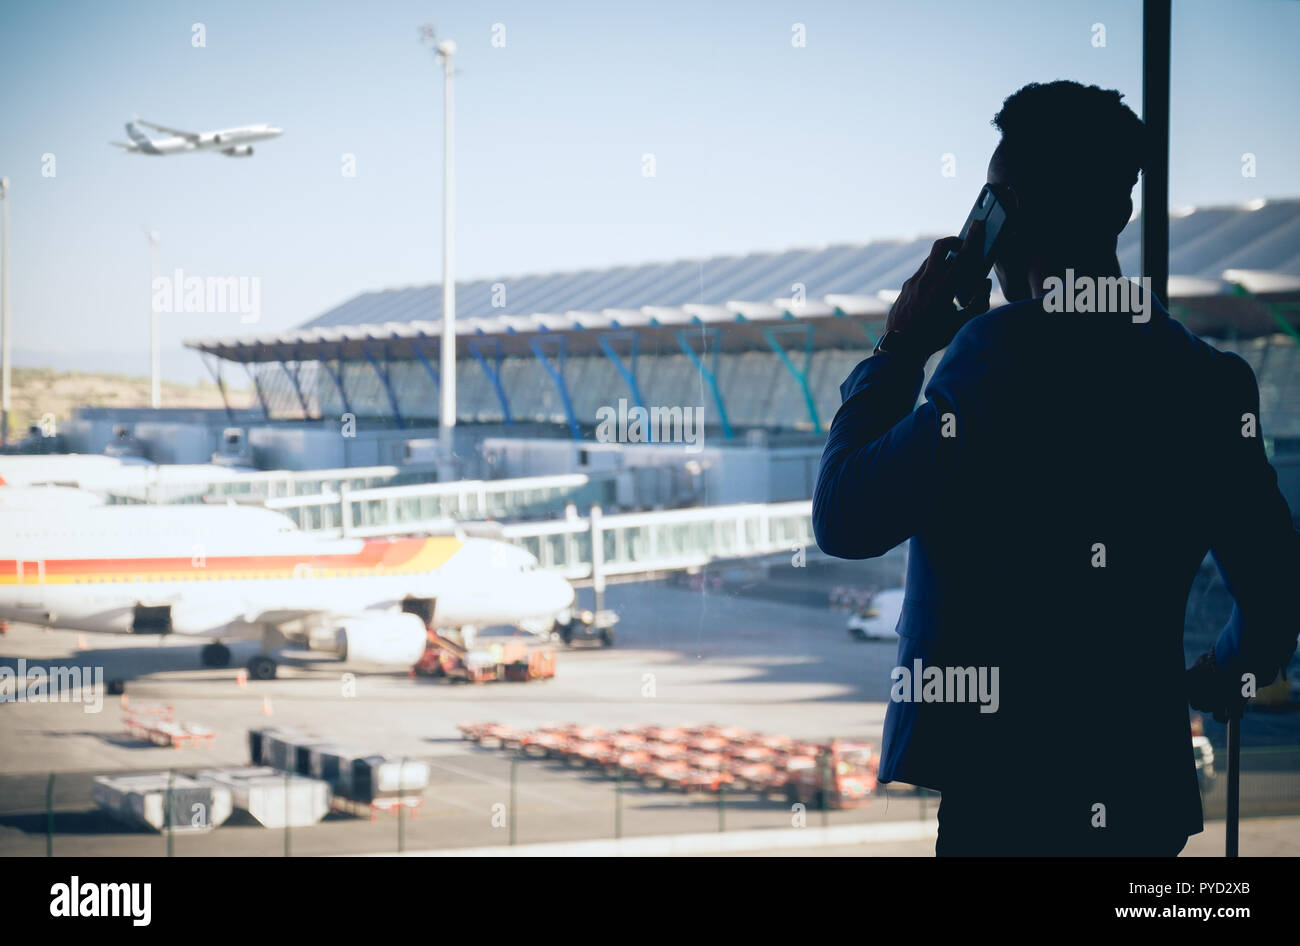 One young and attractive businessman is looking through the window in the airport terminal. An aeroplane is flying while others are parked on the land - Stock Image